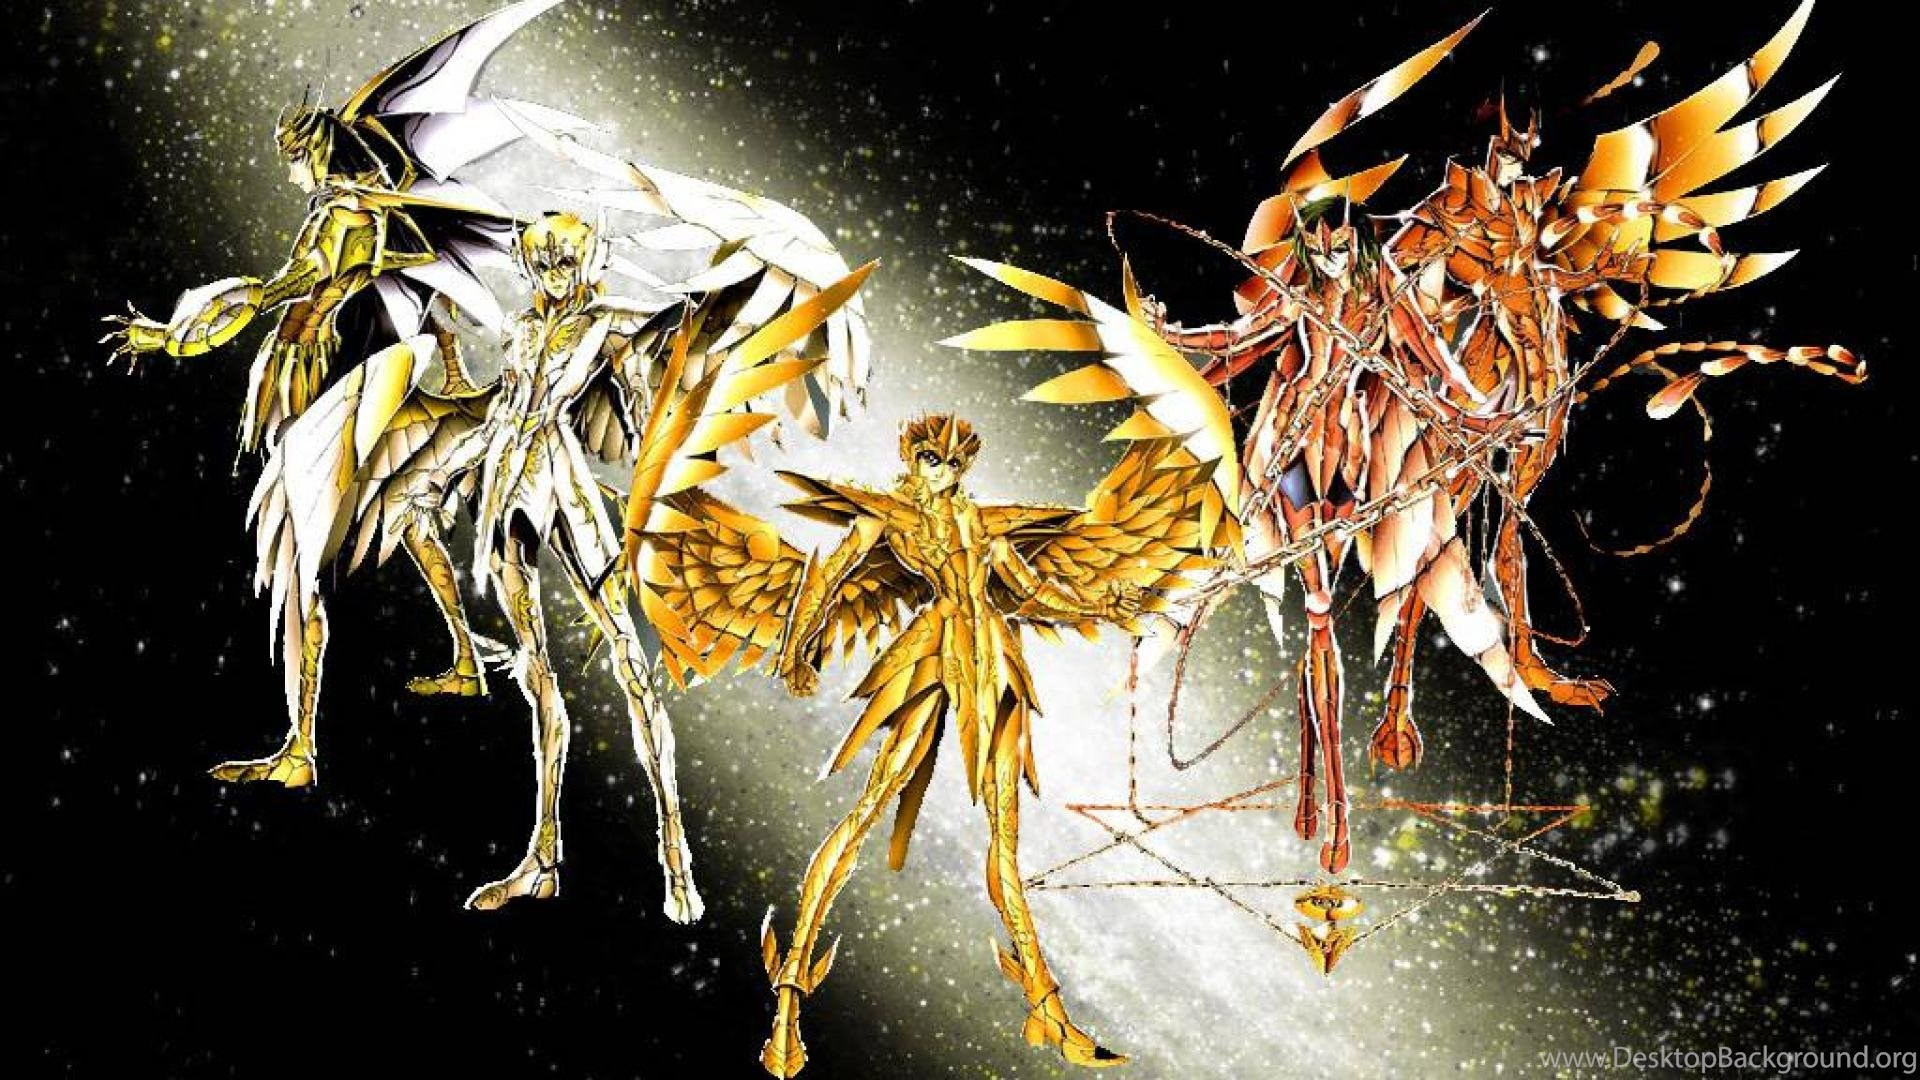 Athena Divine Saints By Blueshinobiepic Saint Seiya Wallpapers